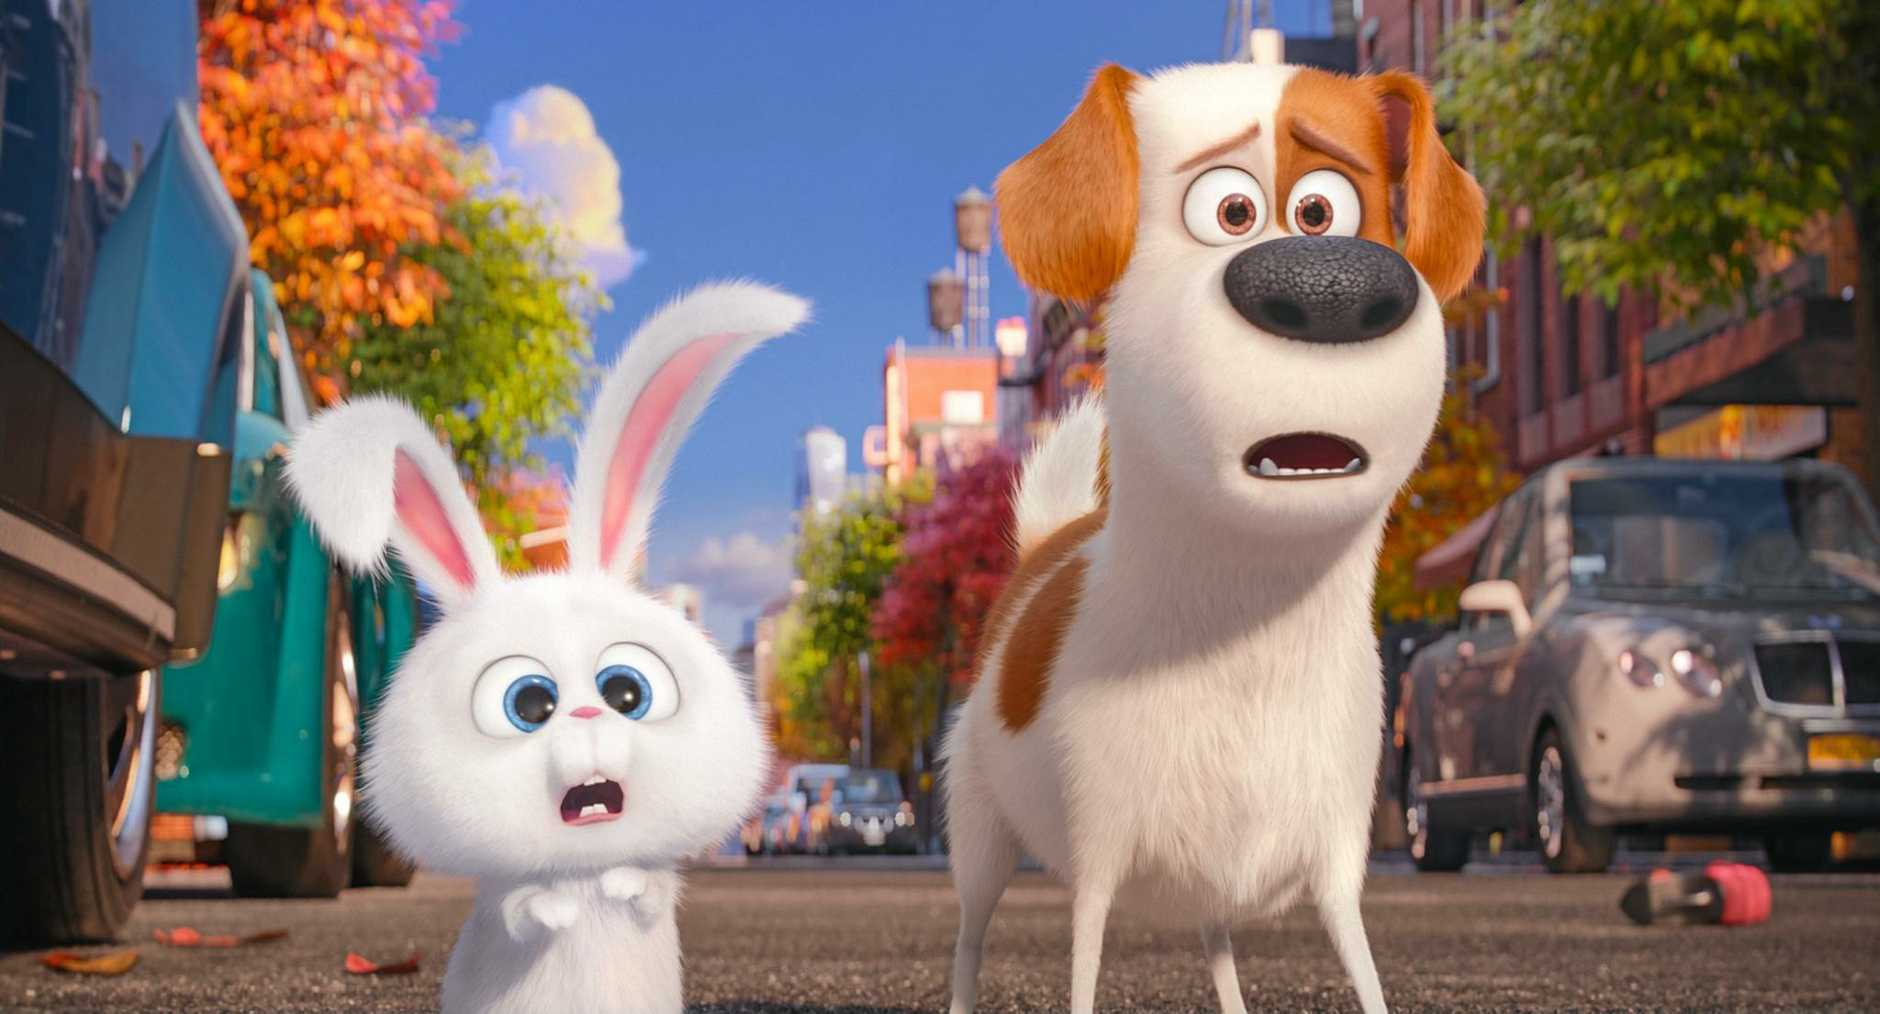 A scene from the movie The Secret Life of Pets.